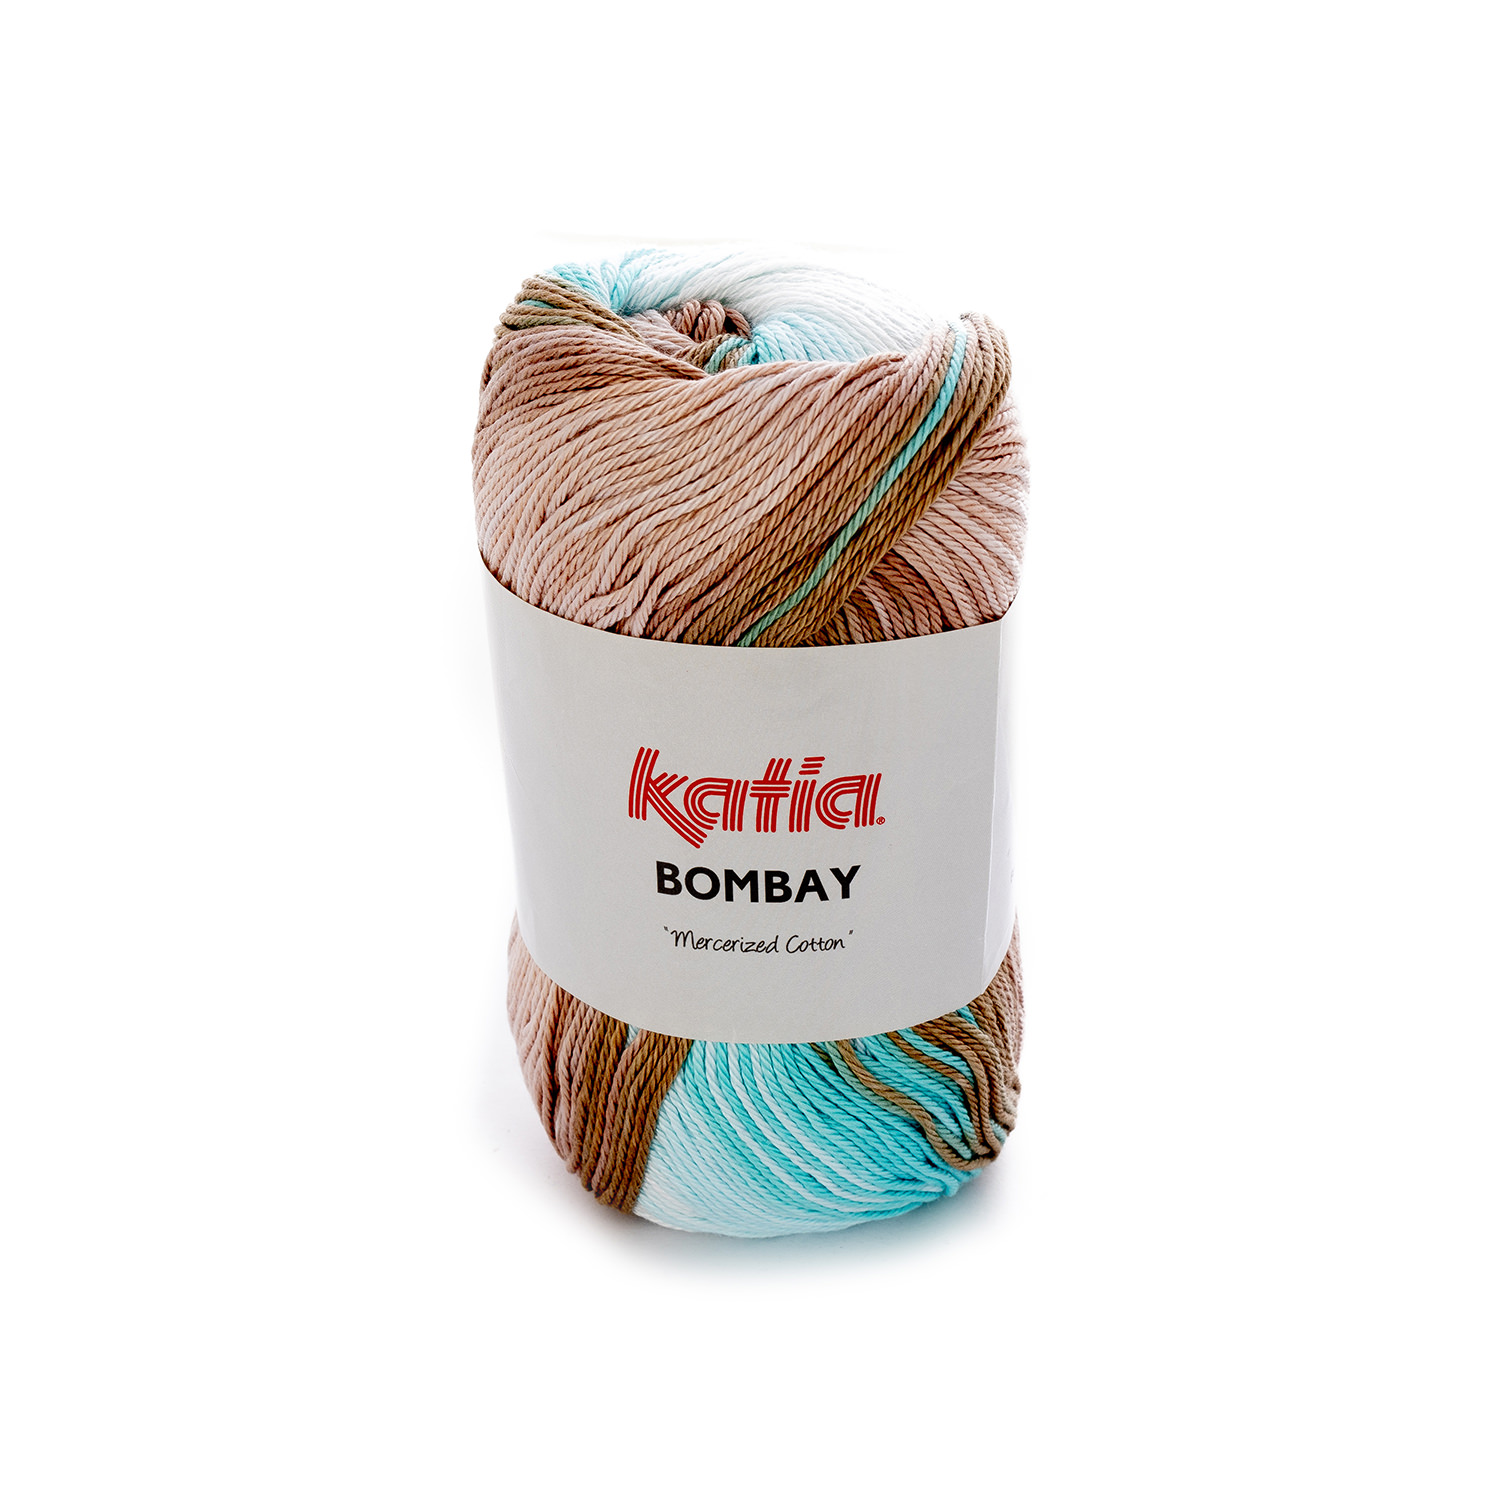 KATIA - BOMBAY 2031 -  Blue/Bluegreen/Beige/White